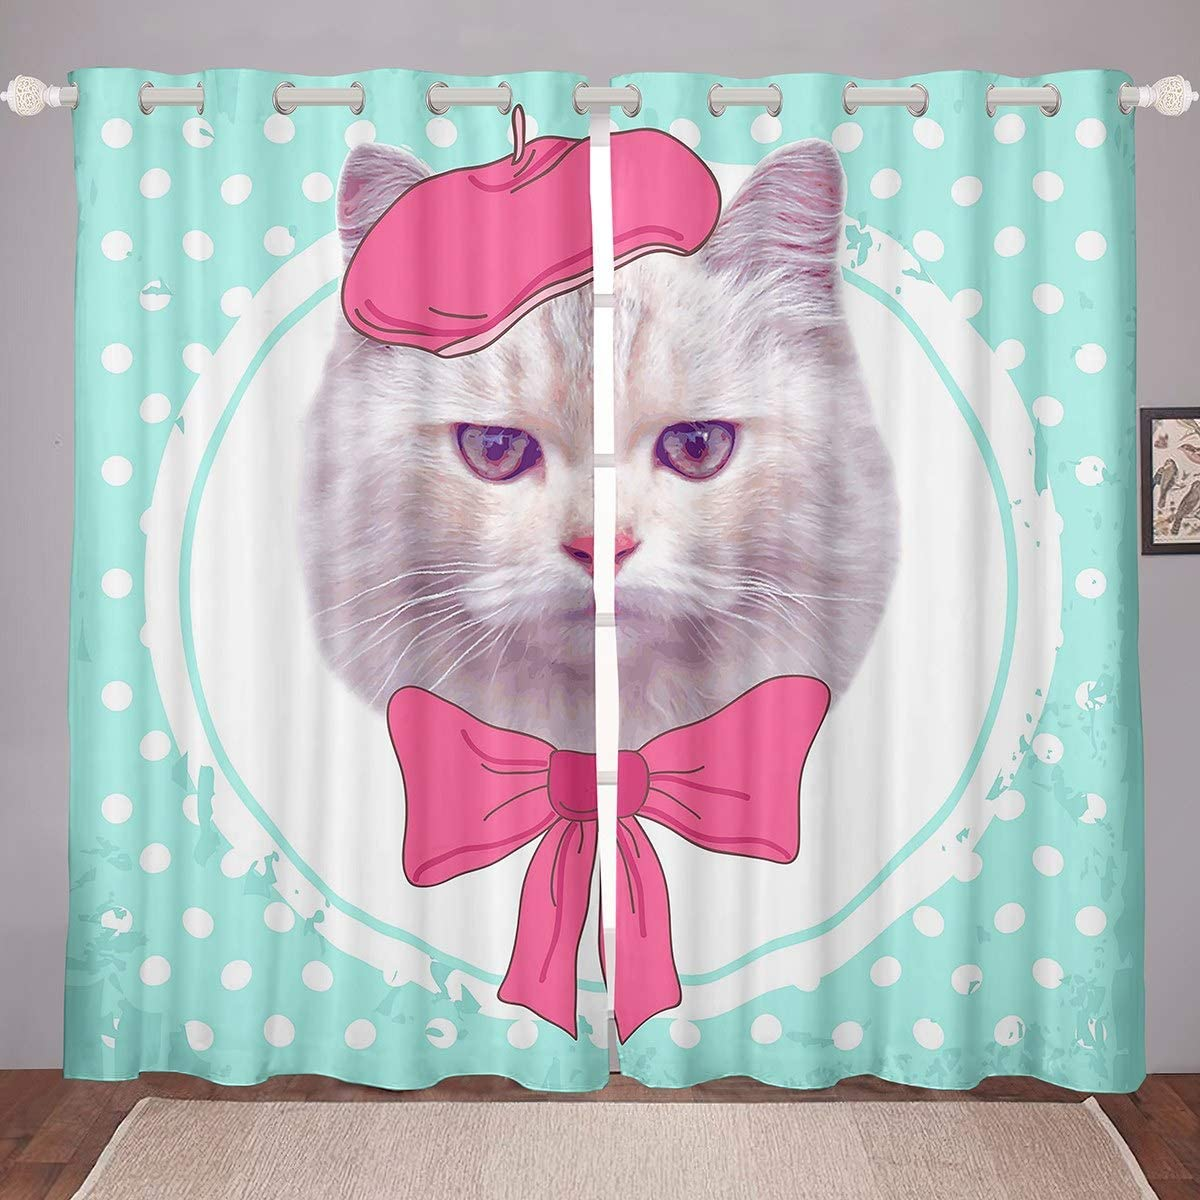 Feelyou Recommended 55% OFF Cat Curtains with Bow Bowler and fo Tie Hat